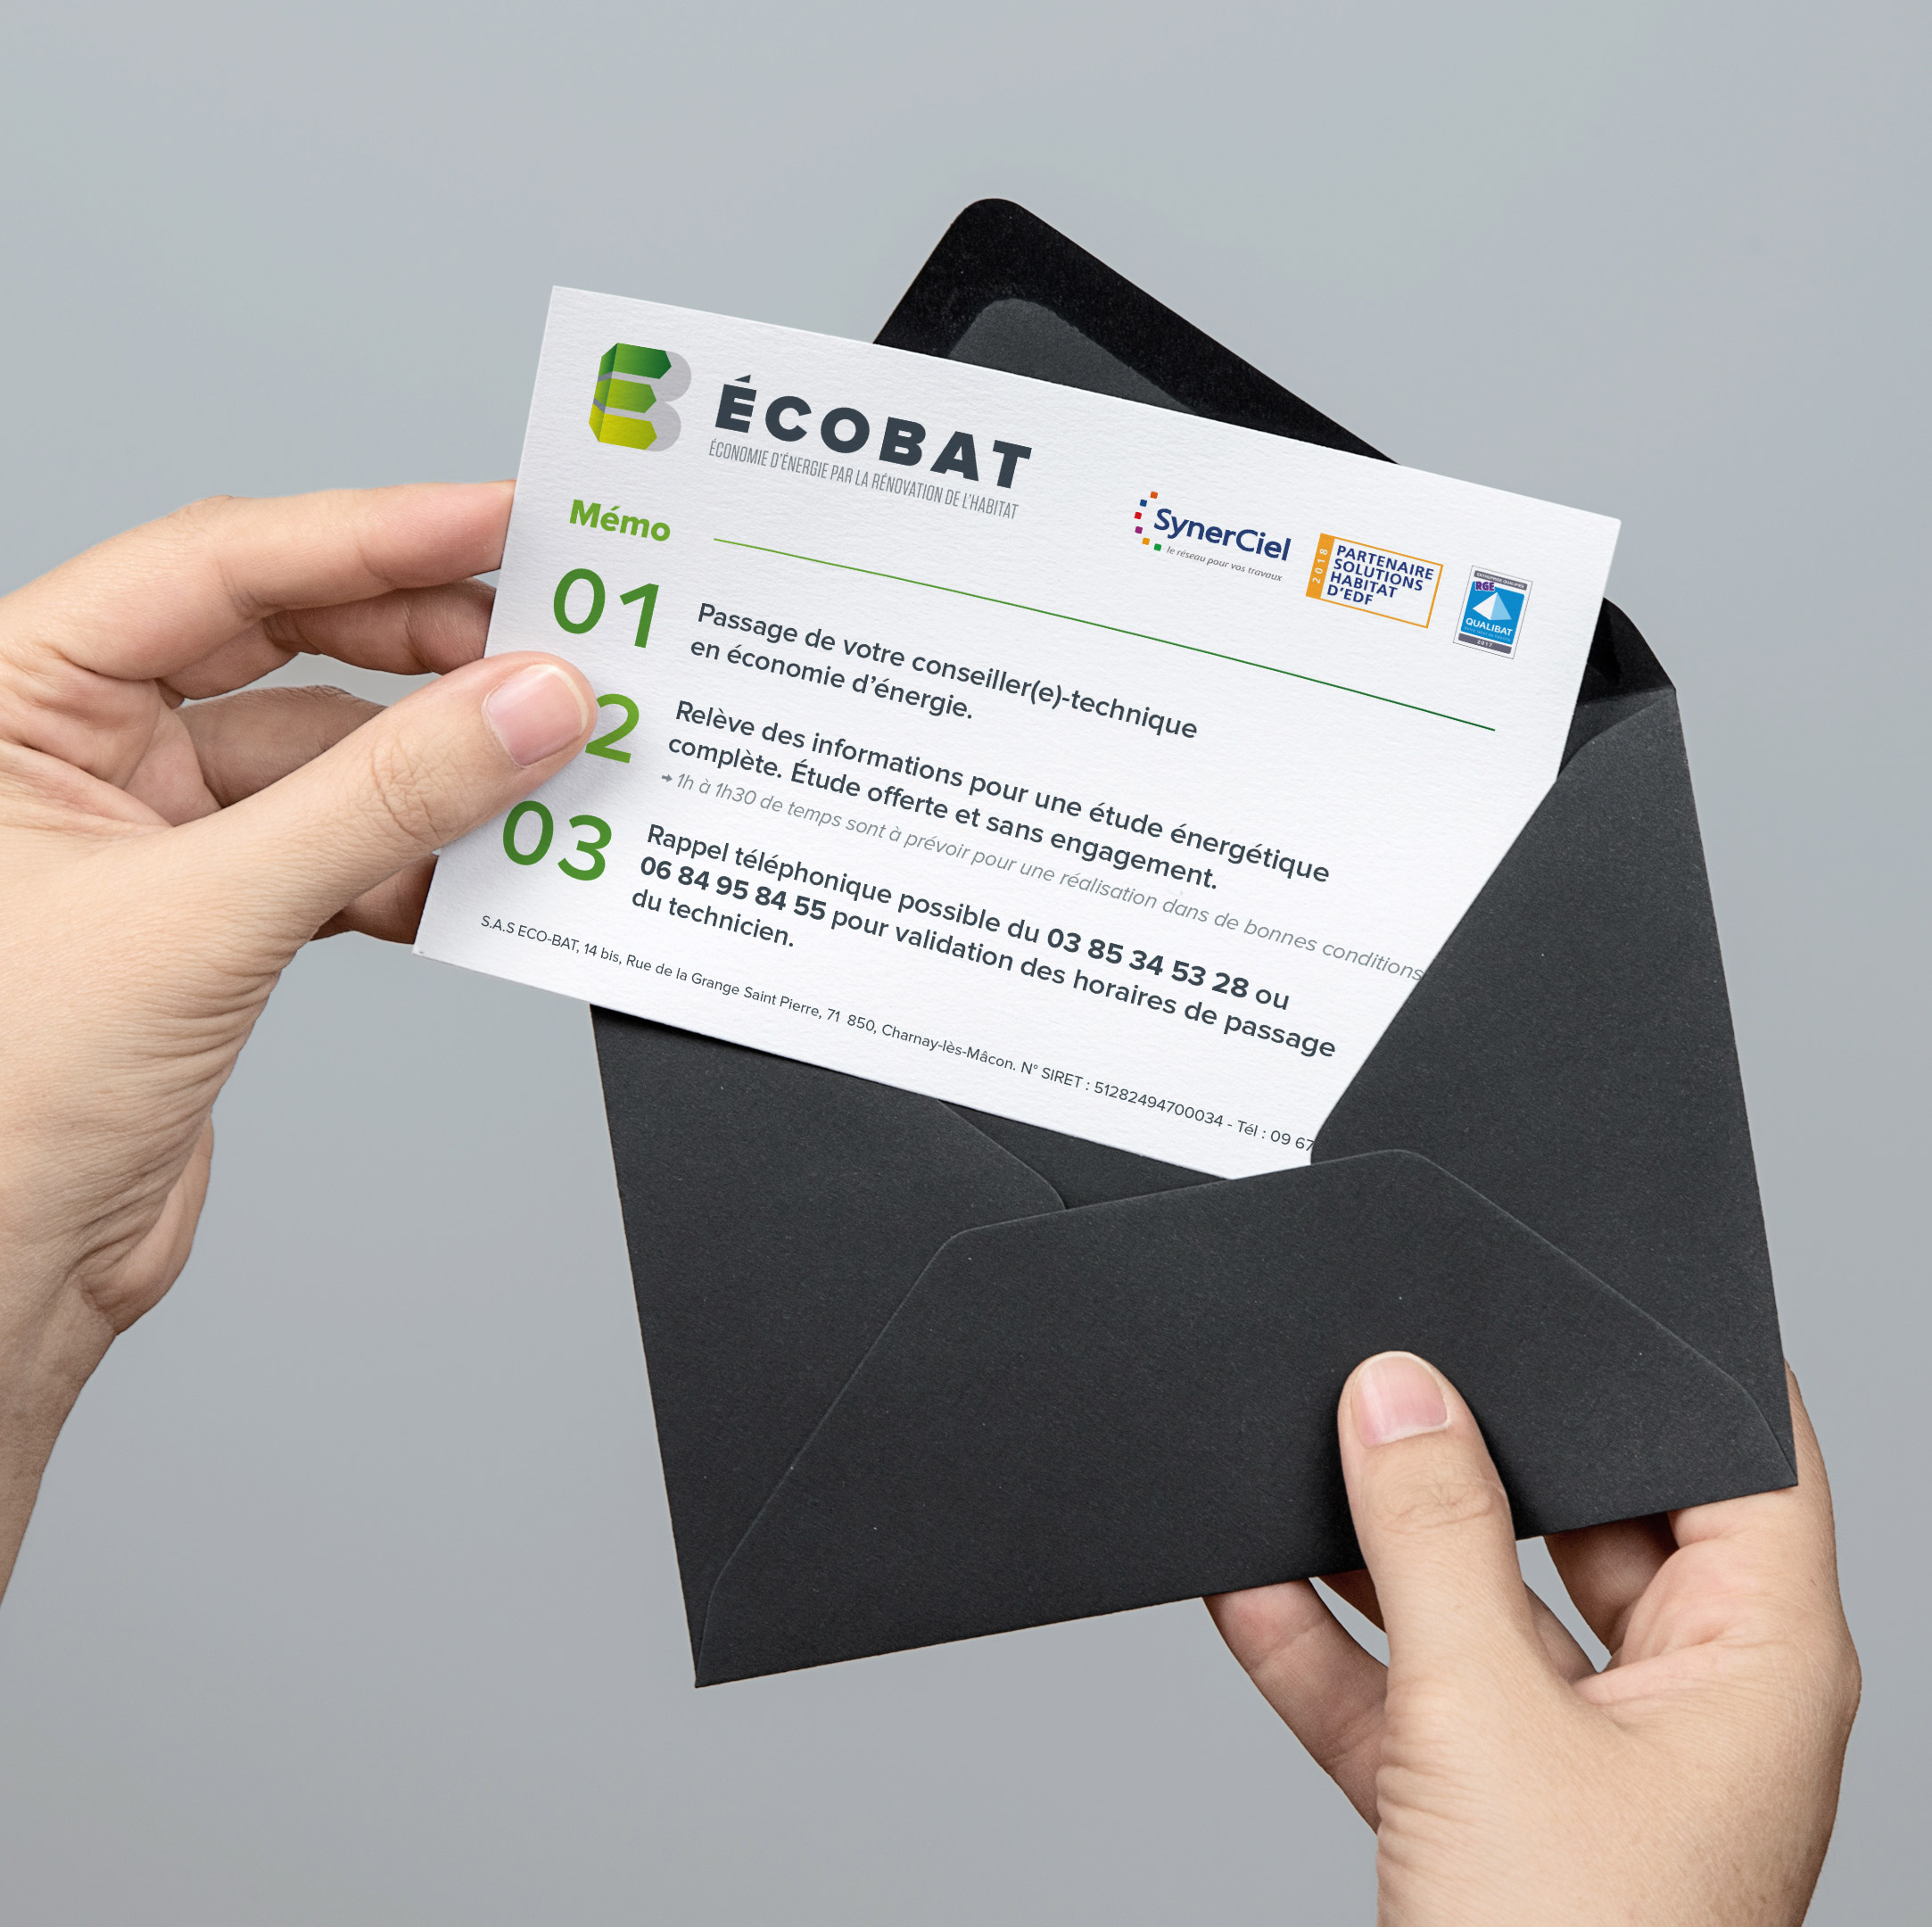 Ecobat-Renovation-Habitat-Memo